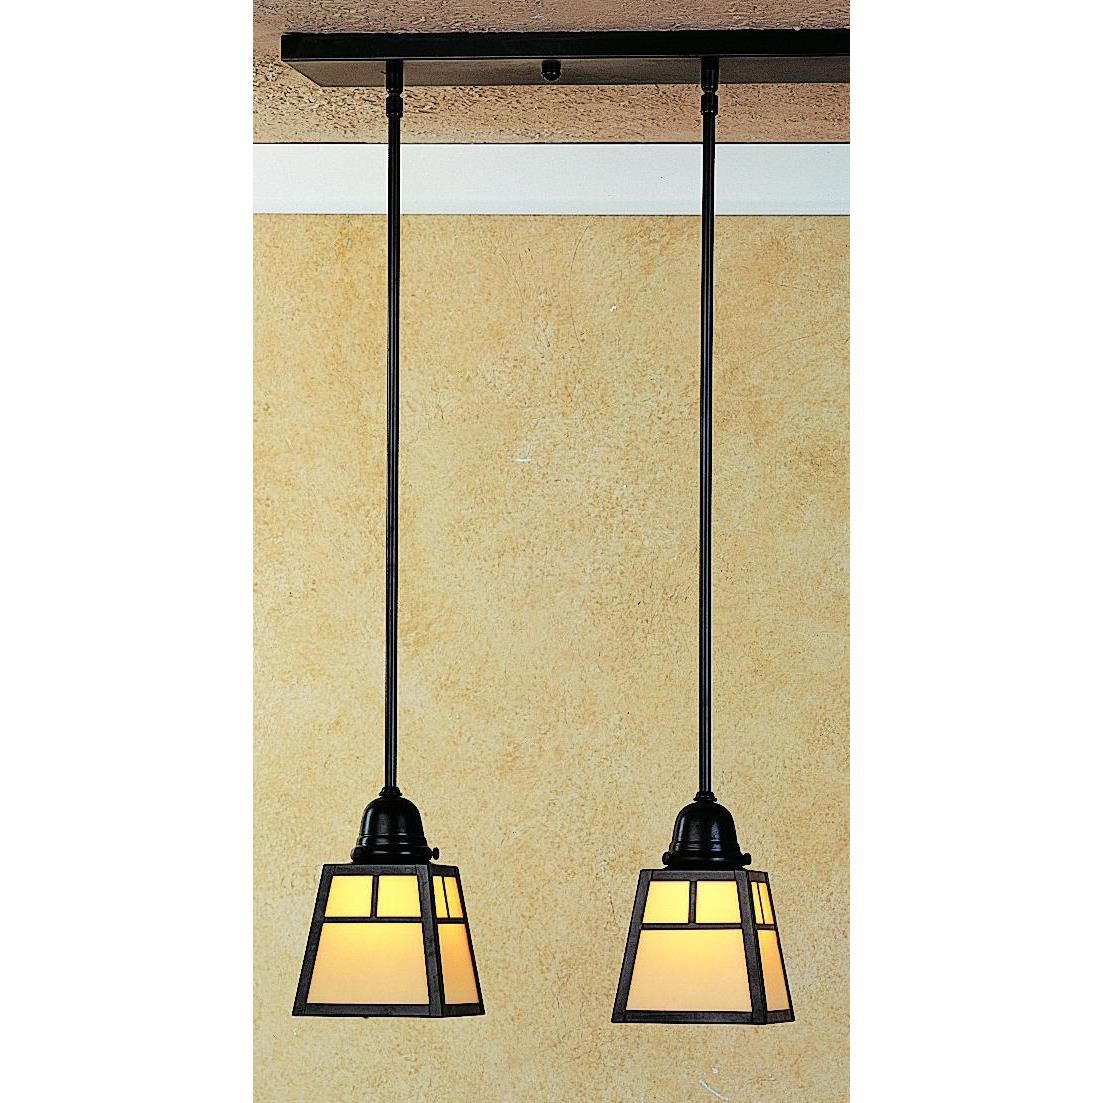 Arroyo Craftsman A-Line 15 Inch 2 Light Linear Suspension Light A-Line - AICH-2T-OF-AC - Craftsman-Mission